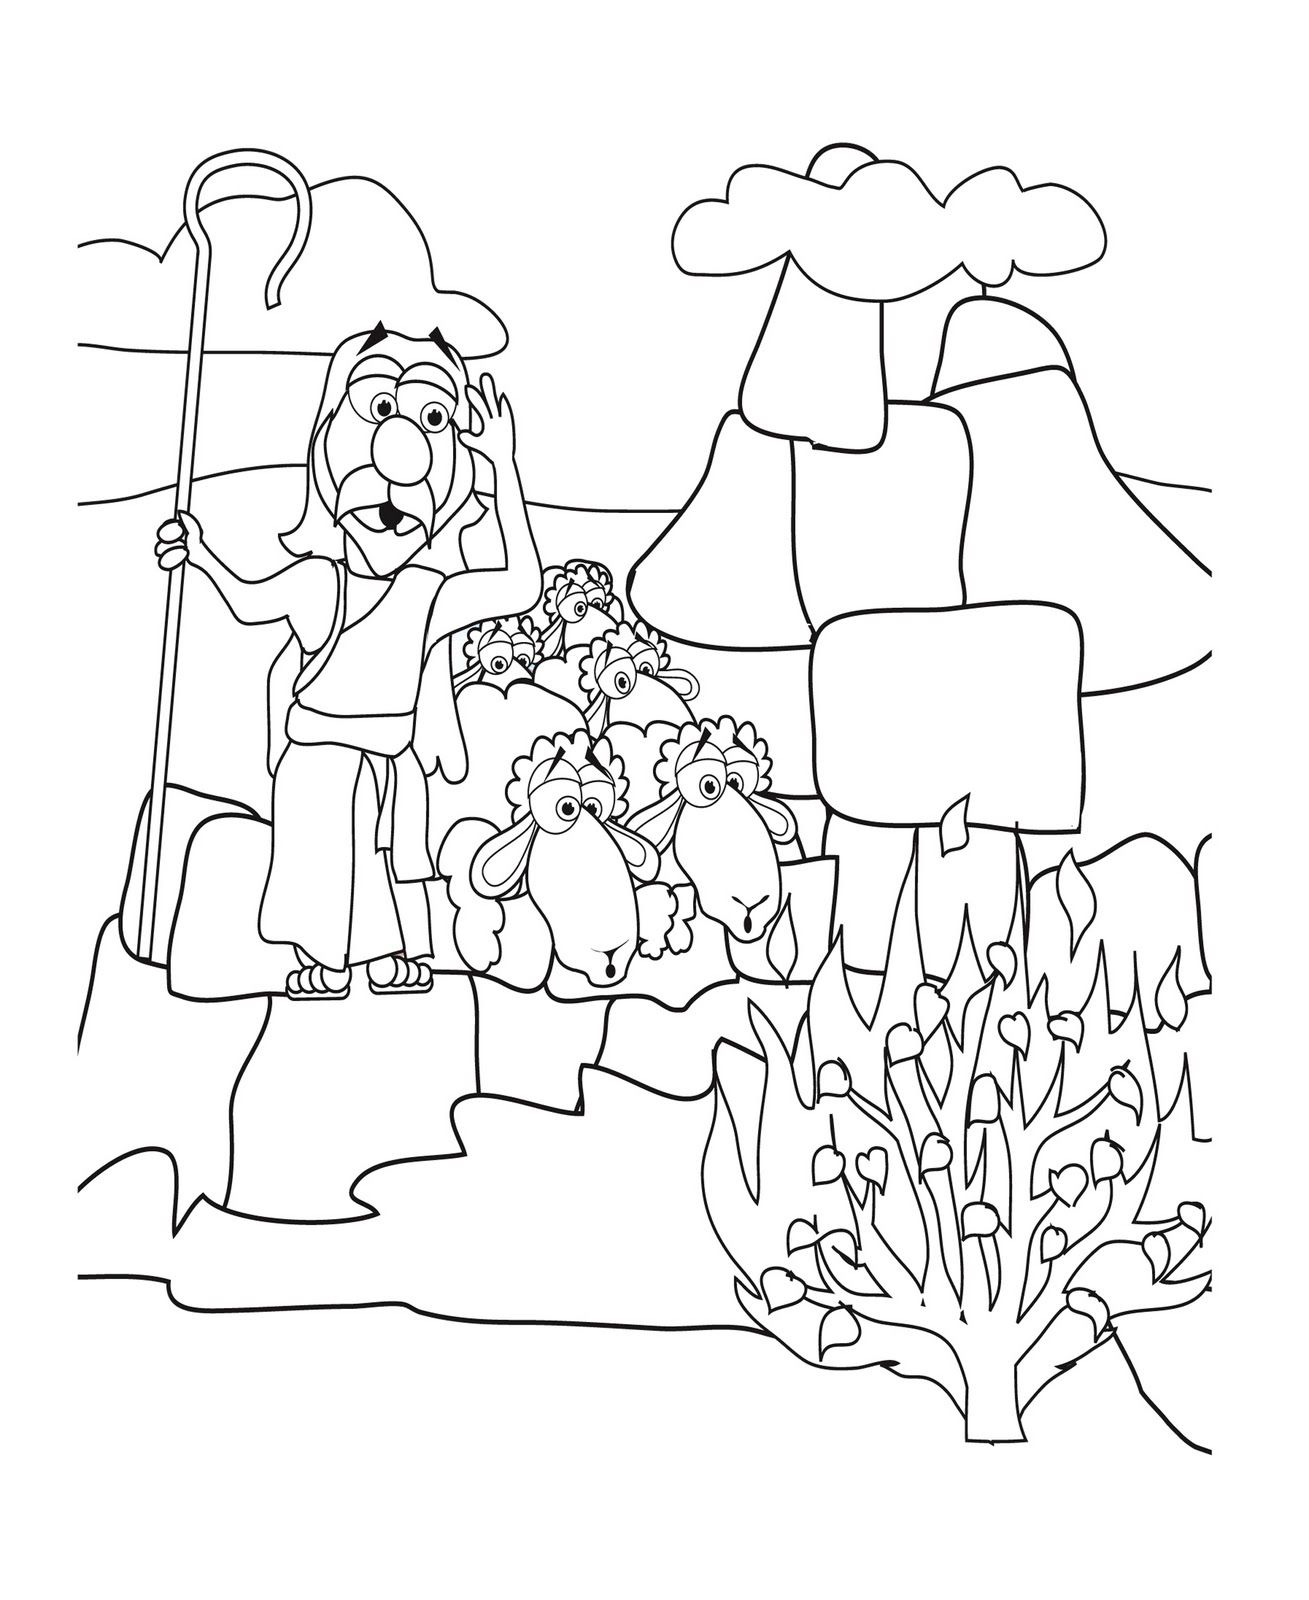 Printable coloring pages moses burning bush - Image Result For Hebrew Roots Coloring Page Printable